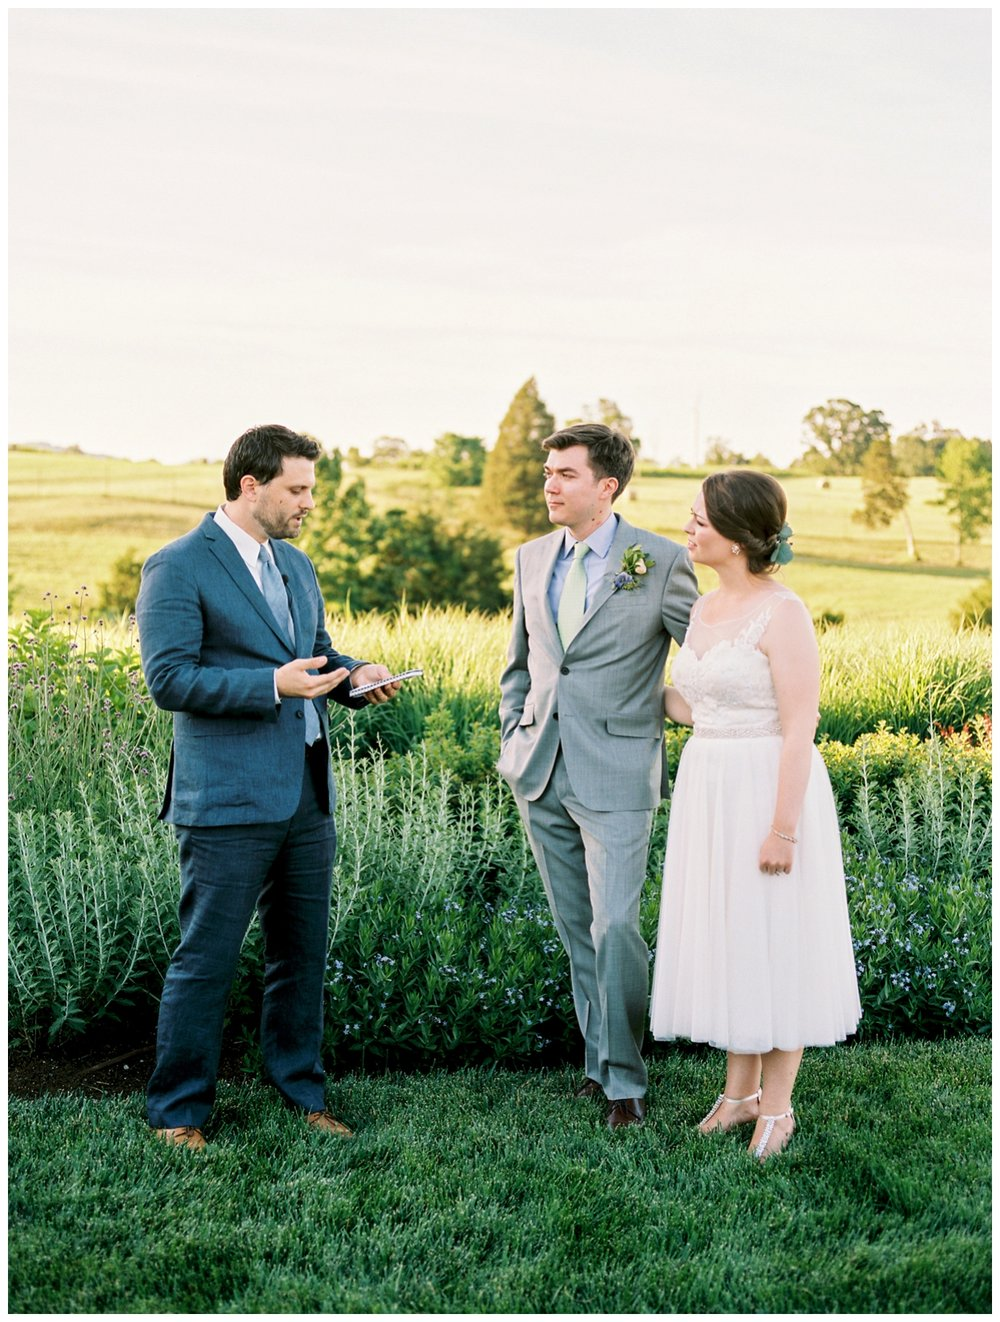 Summer wedding at Early Mountain Vineyard in Charlottesville Virginia by fine art wedding photographer Lissa Ryan Photography